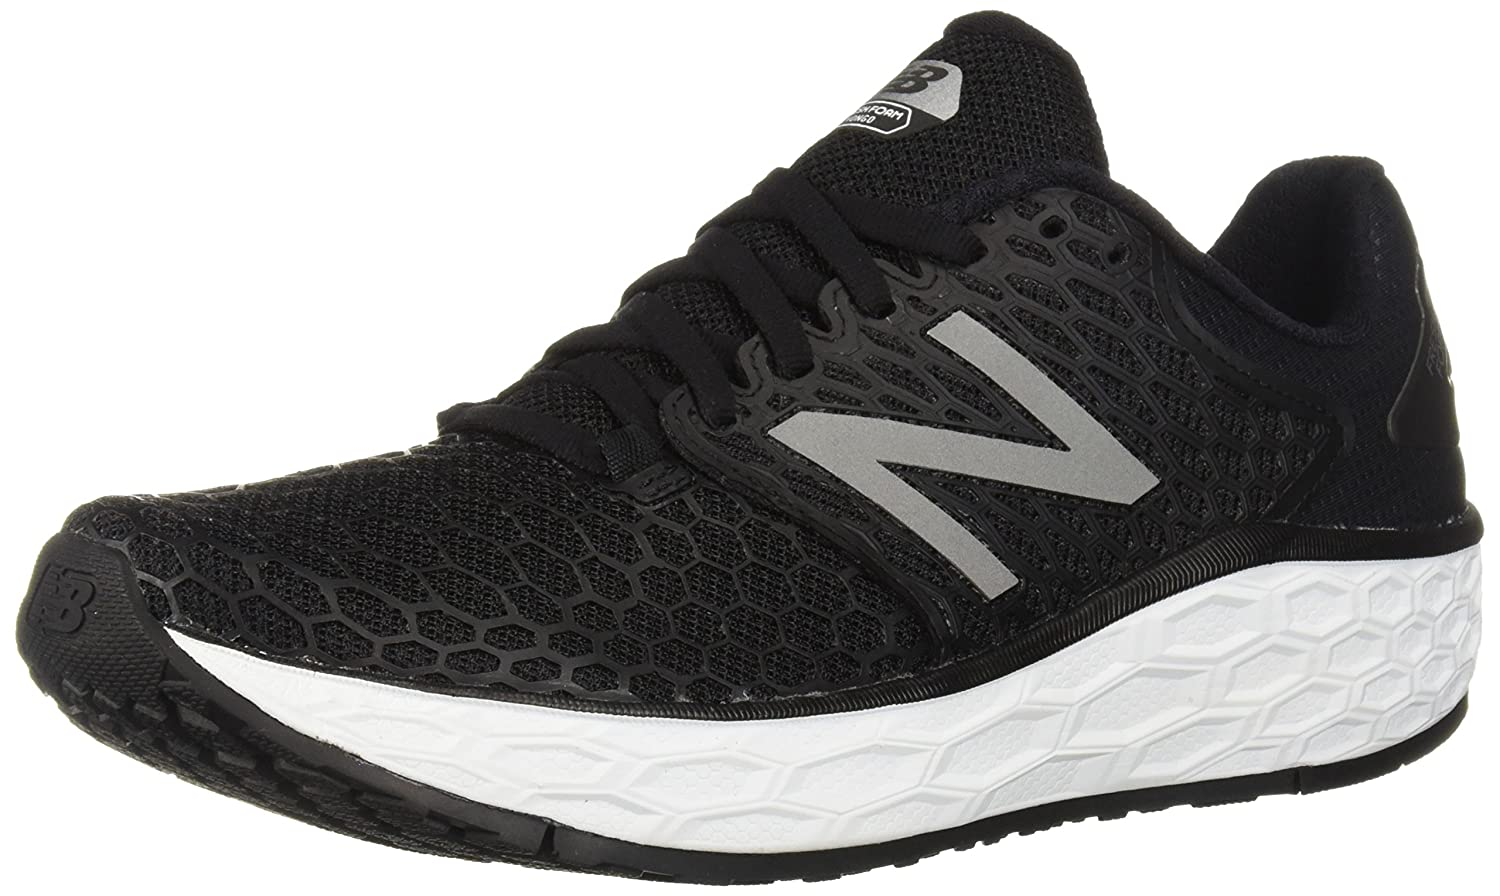 New Balance Women's Vongo V3 Fresh Foam Running Shoe B075R7J4QB 9.5 B(M) US|Black